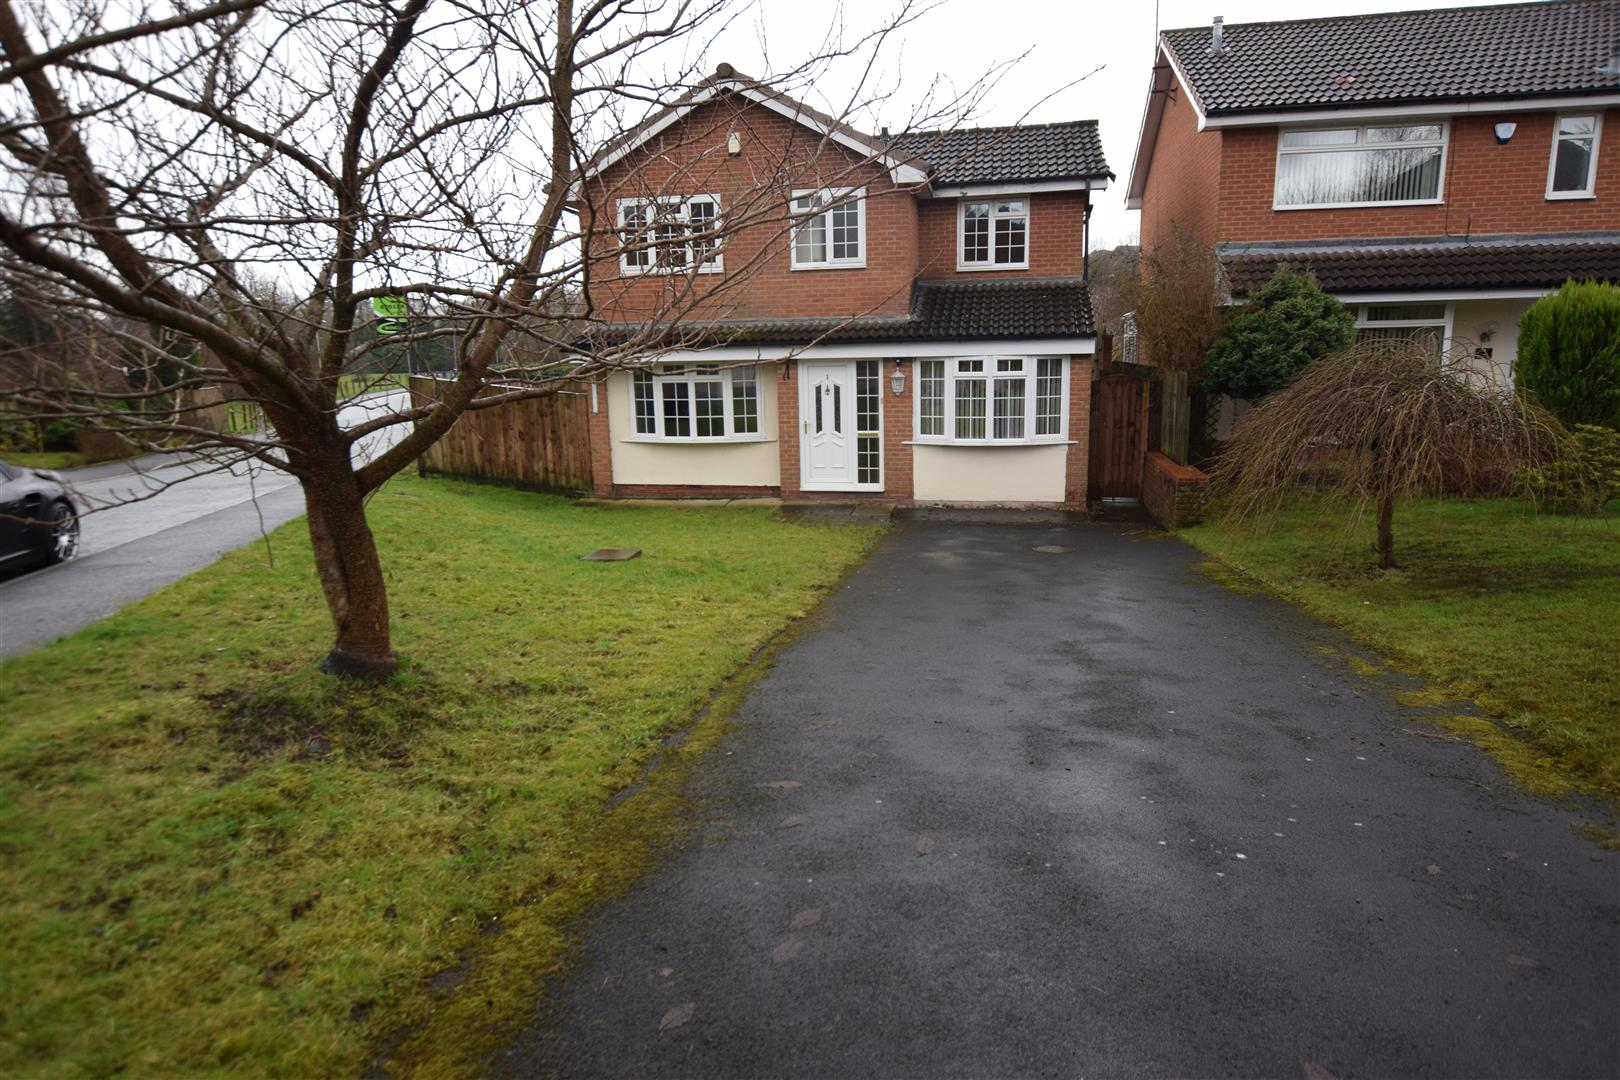 3 Bedrooms House for rent in Saxwood Close, Rochdale